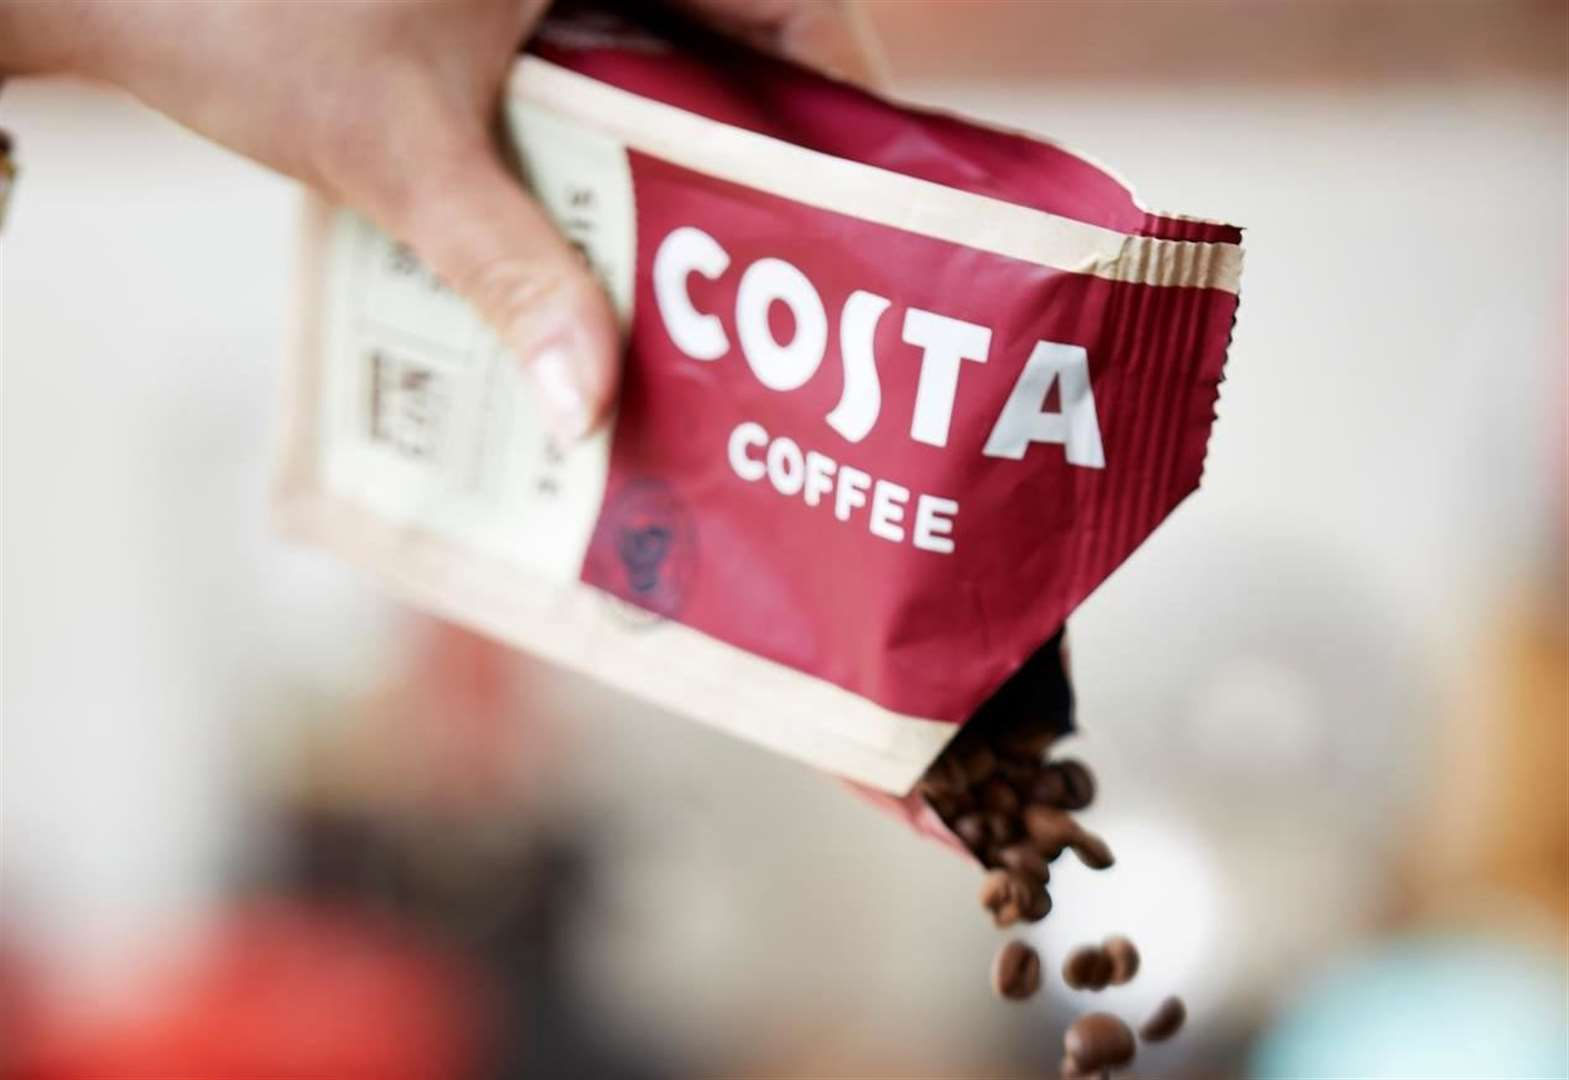 Costa brings back 50p offer